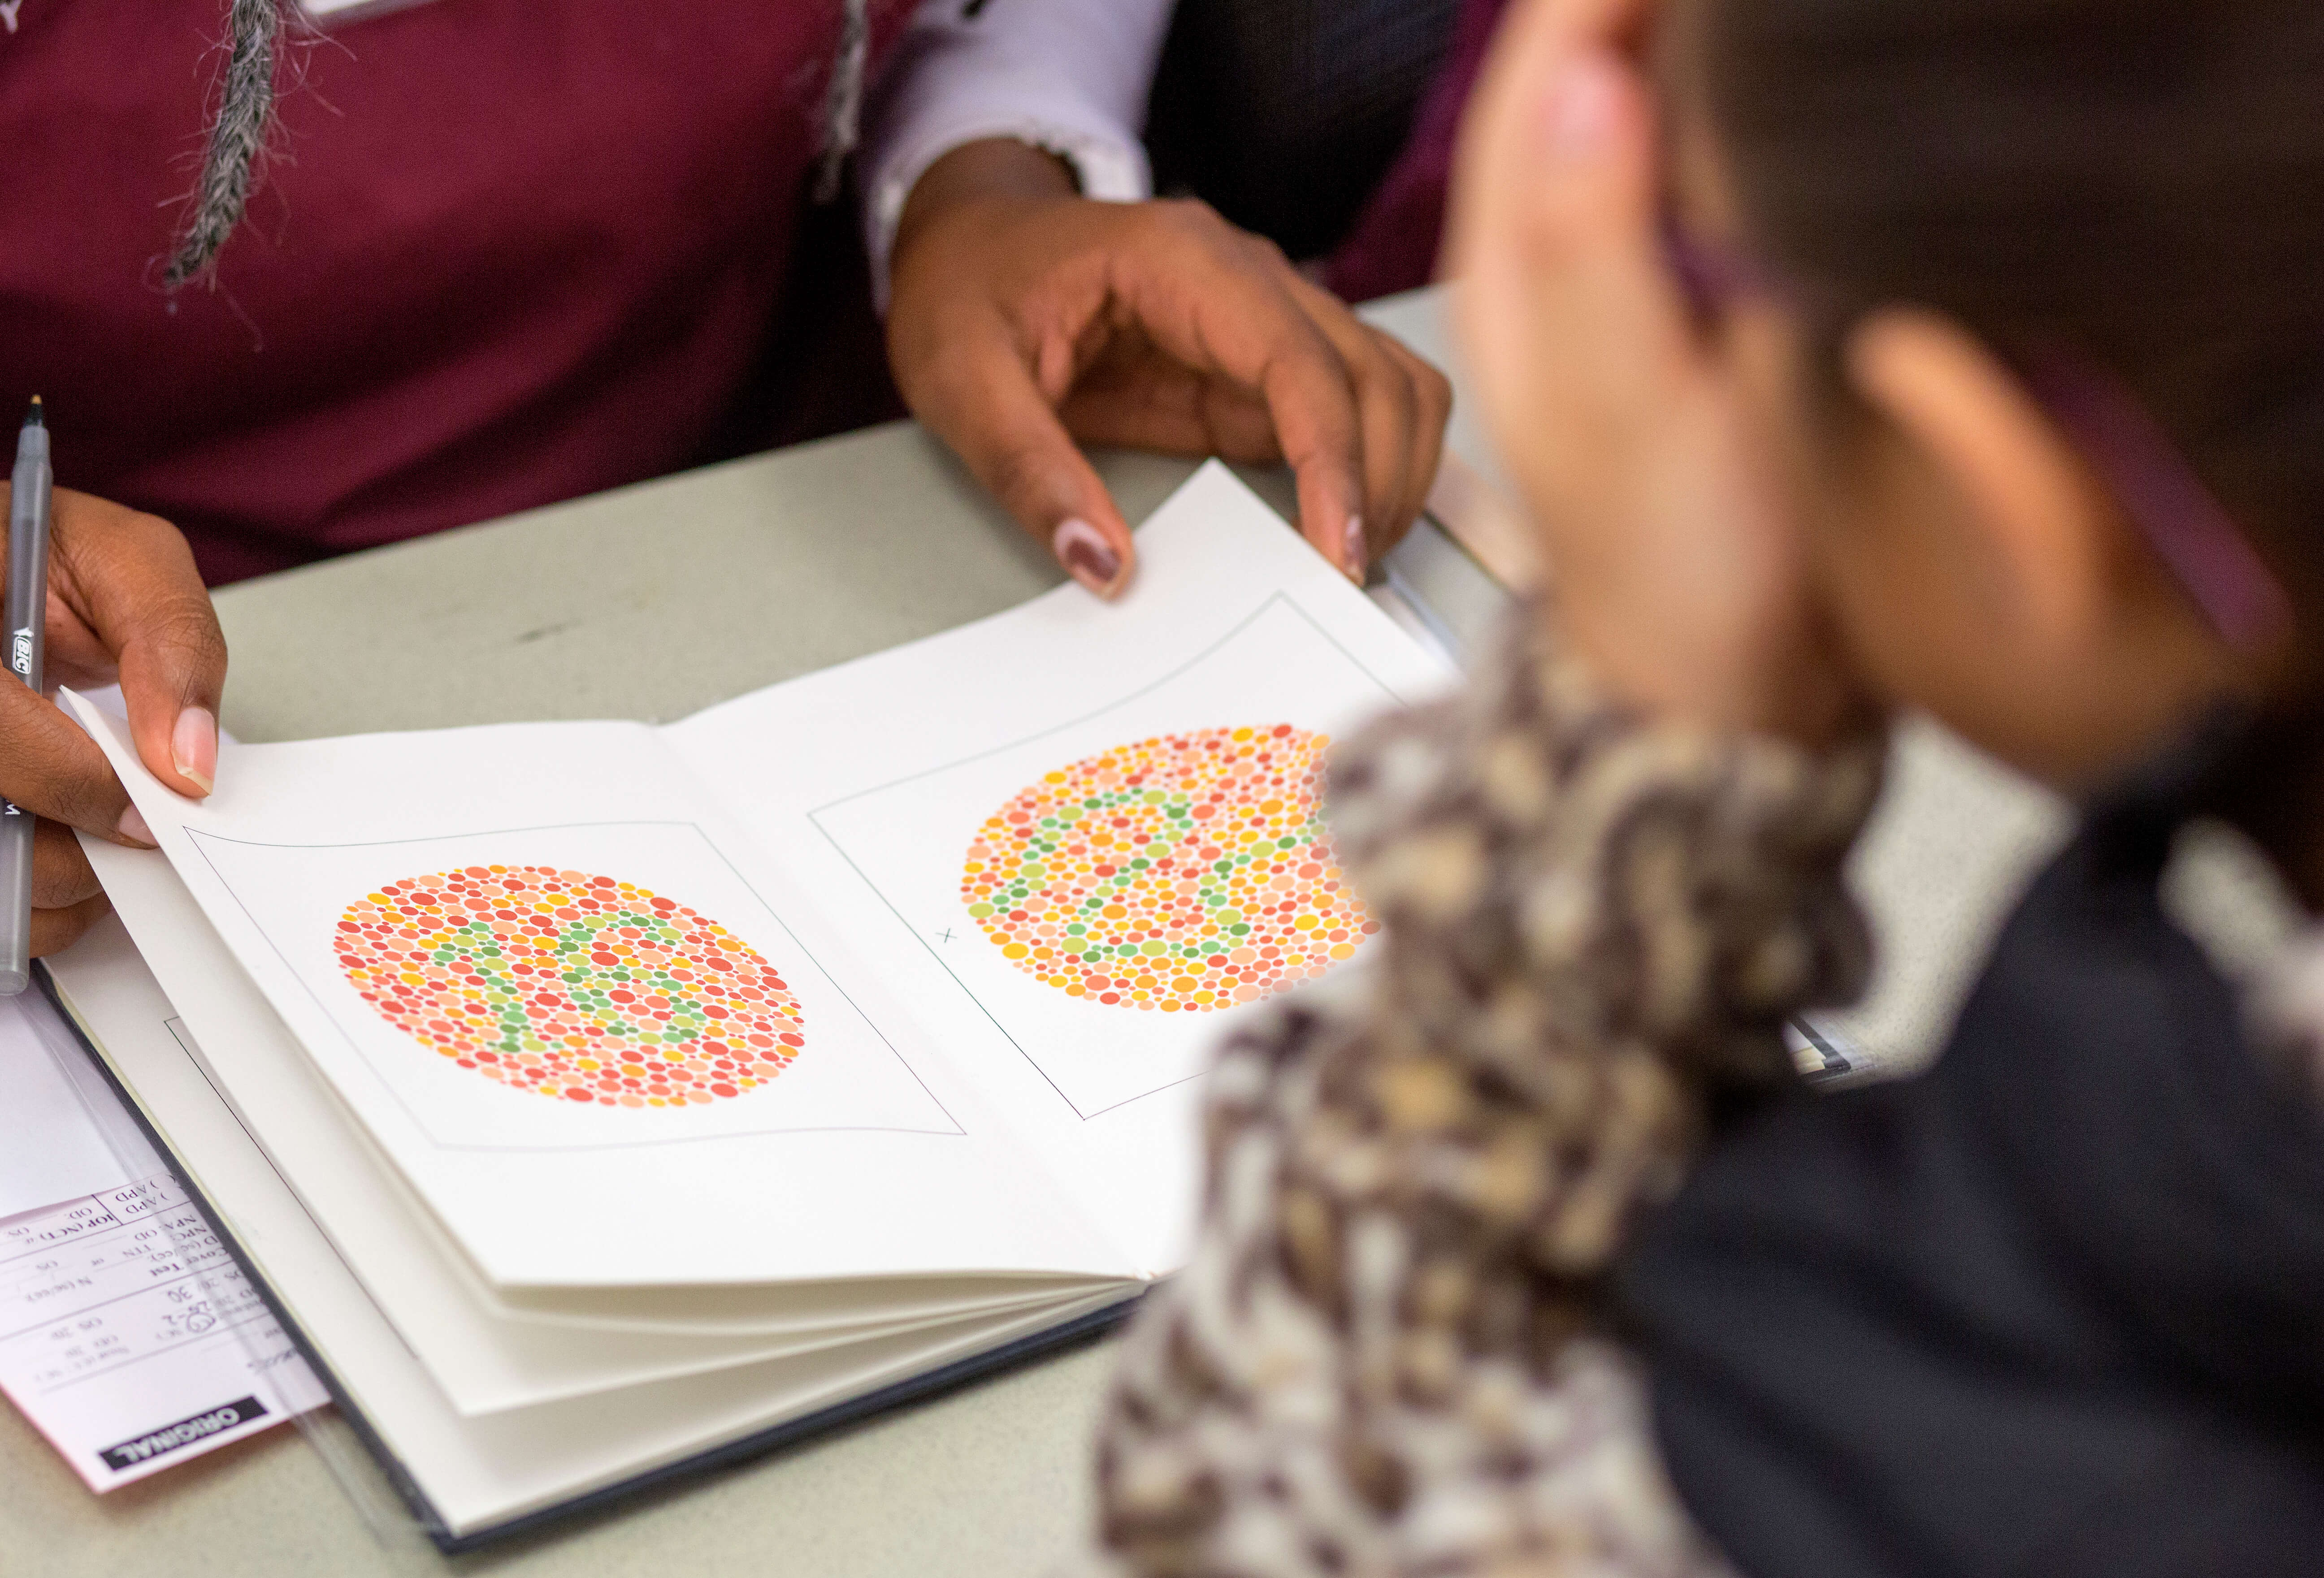 A volunteer performs a colorblindness vision test for a student during